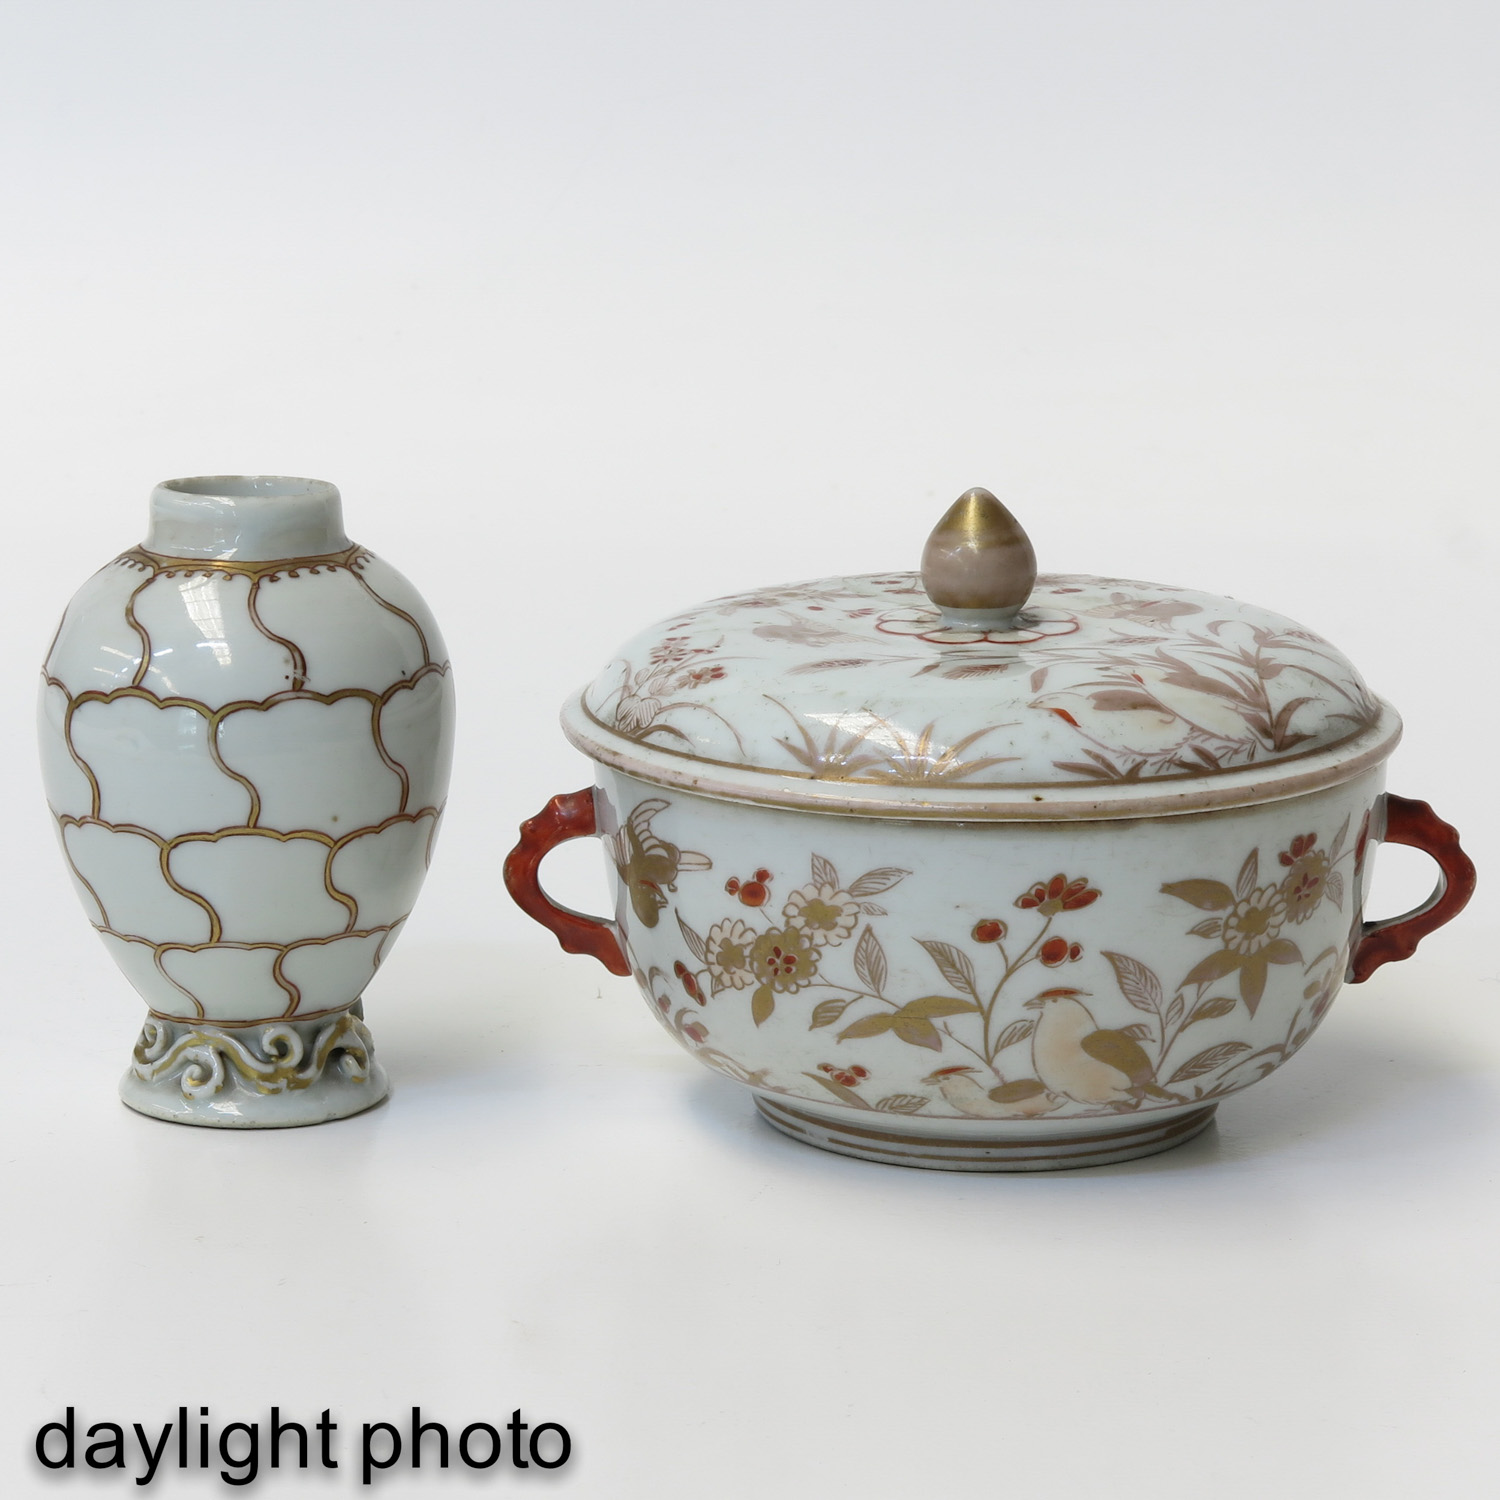 A Tea Box and Covered Dish - Image 7 of 9